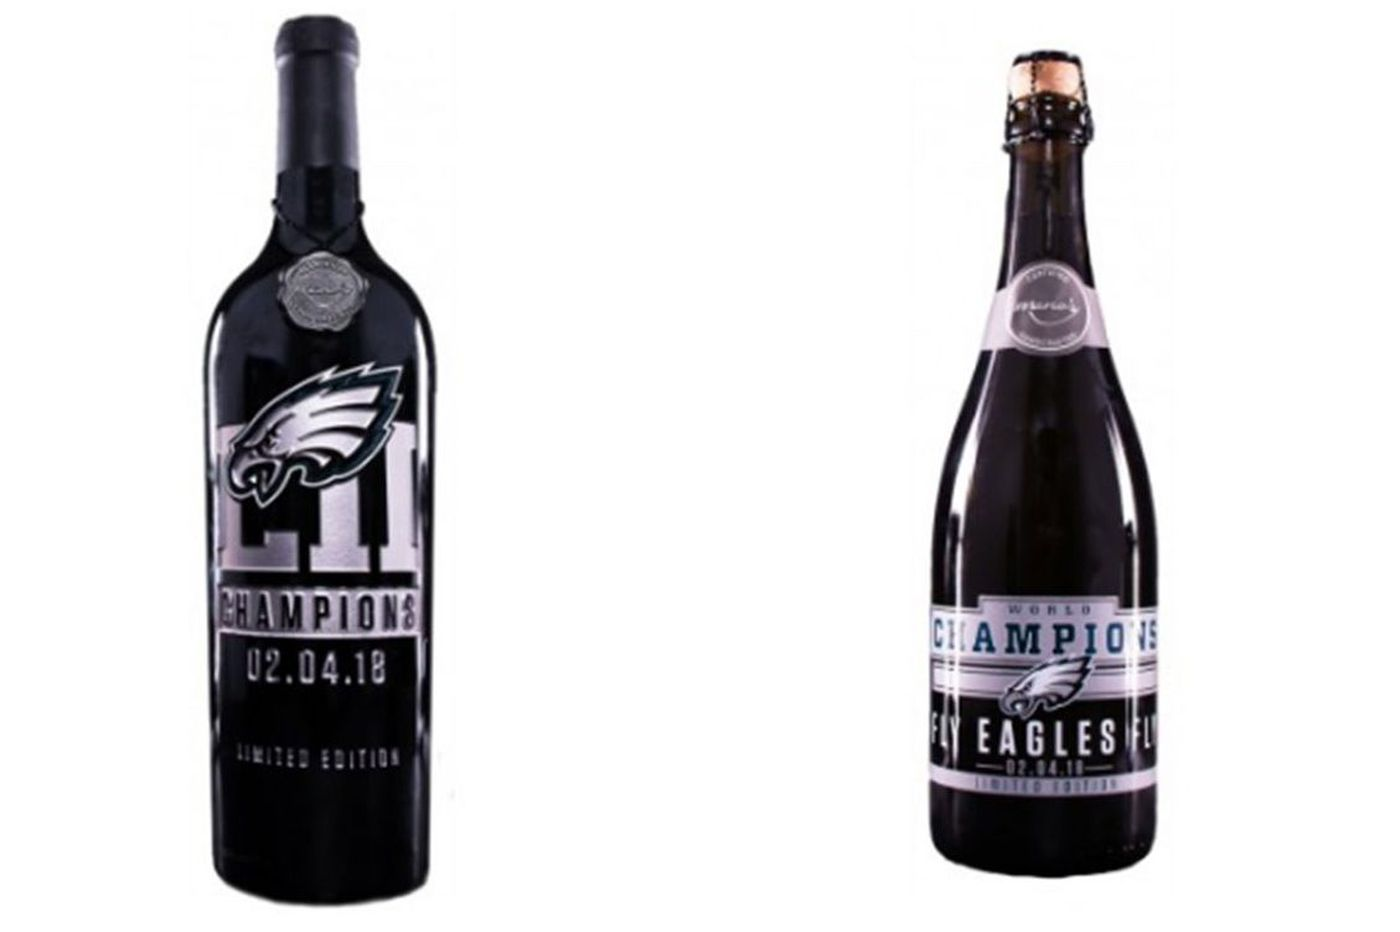 Eagles unveil commemorative Super Bowl wines